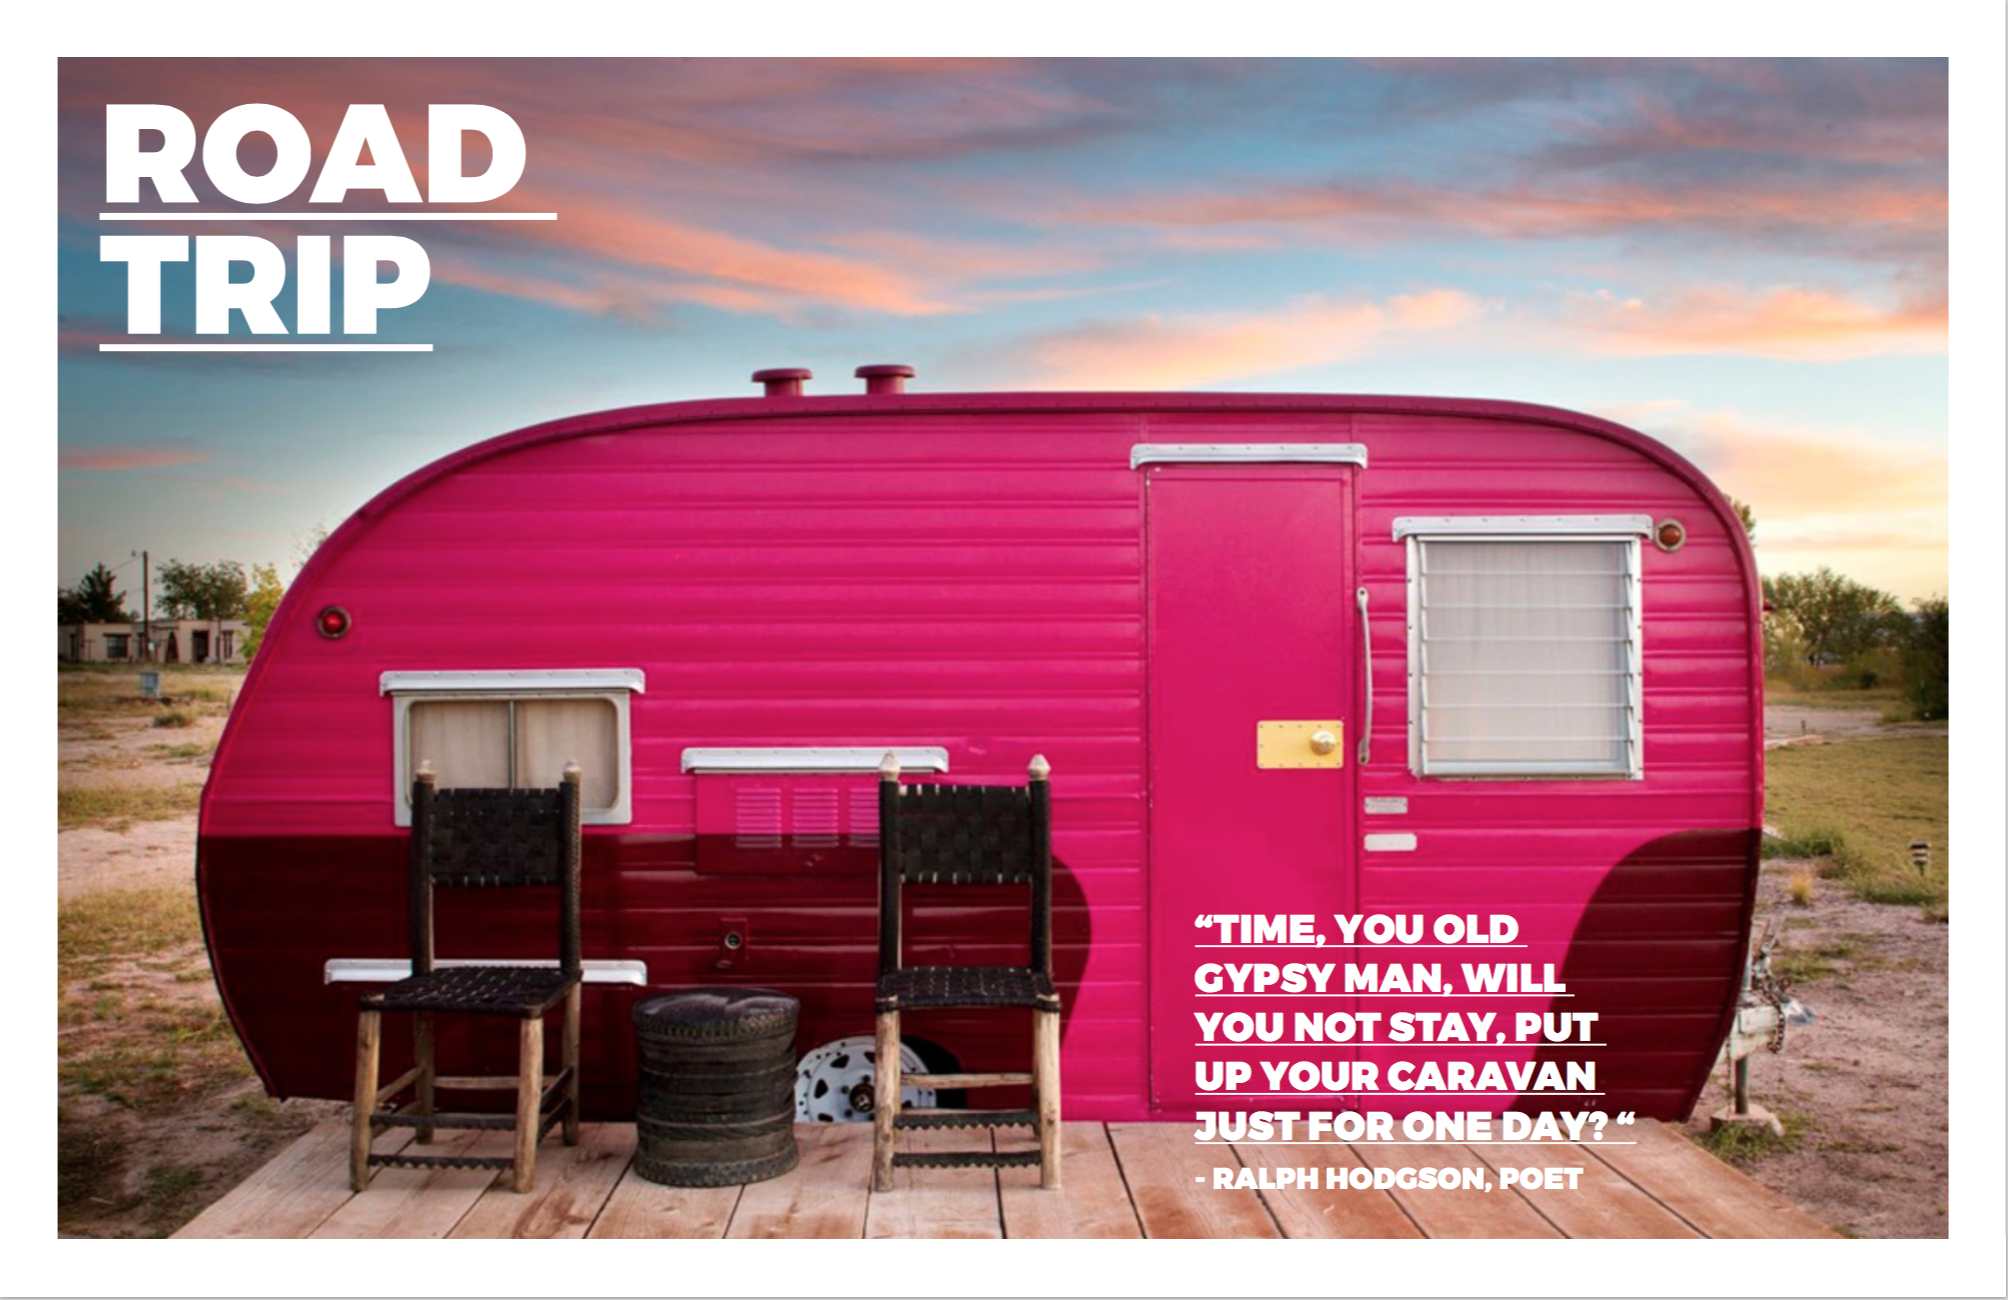 Trailers from another era have a new life and are permanently off road at  Hotel El Cosmico  in Marfa/ Texas. This picture first appeared in Hotels we Love at the  Dwell website .